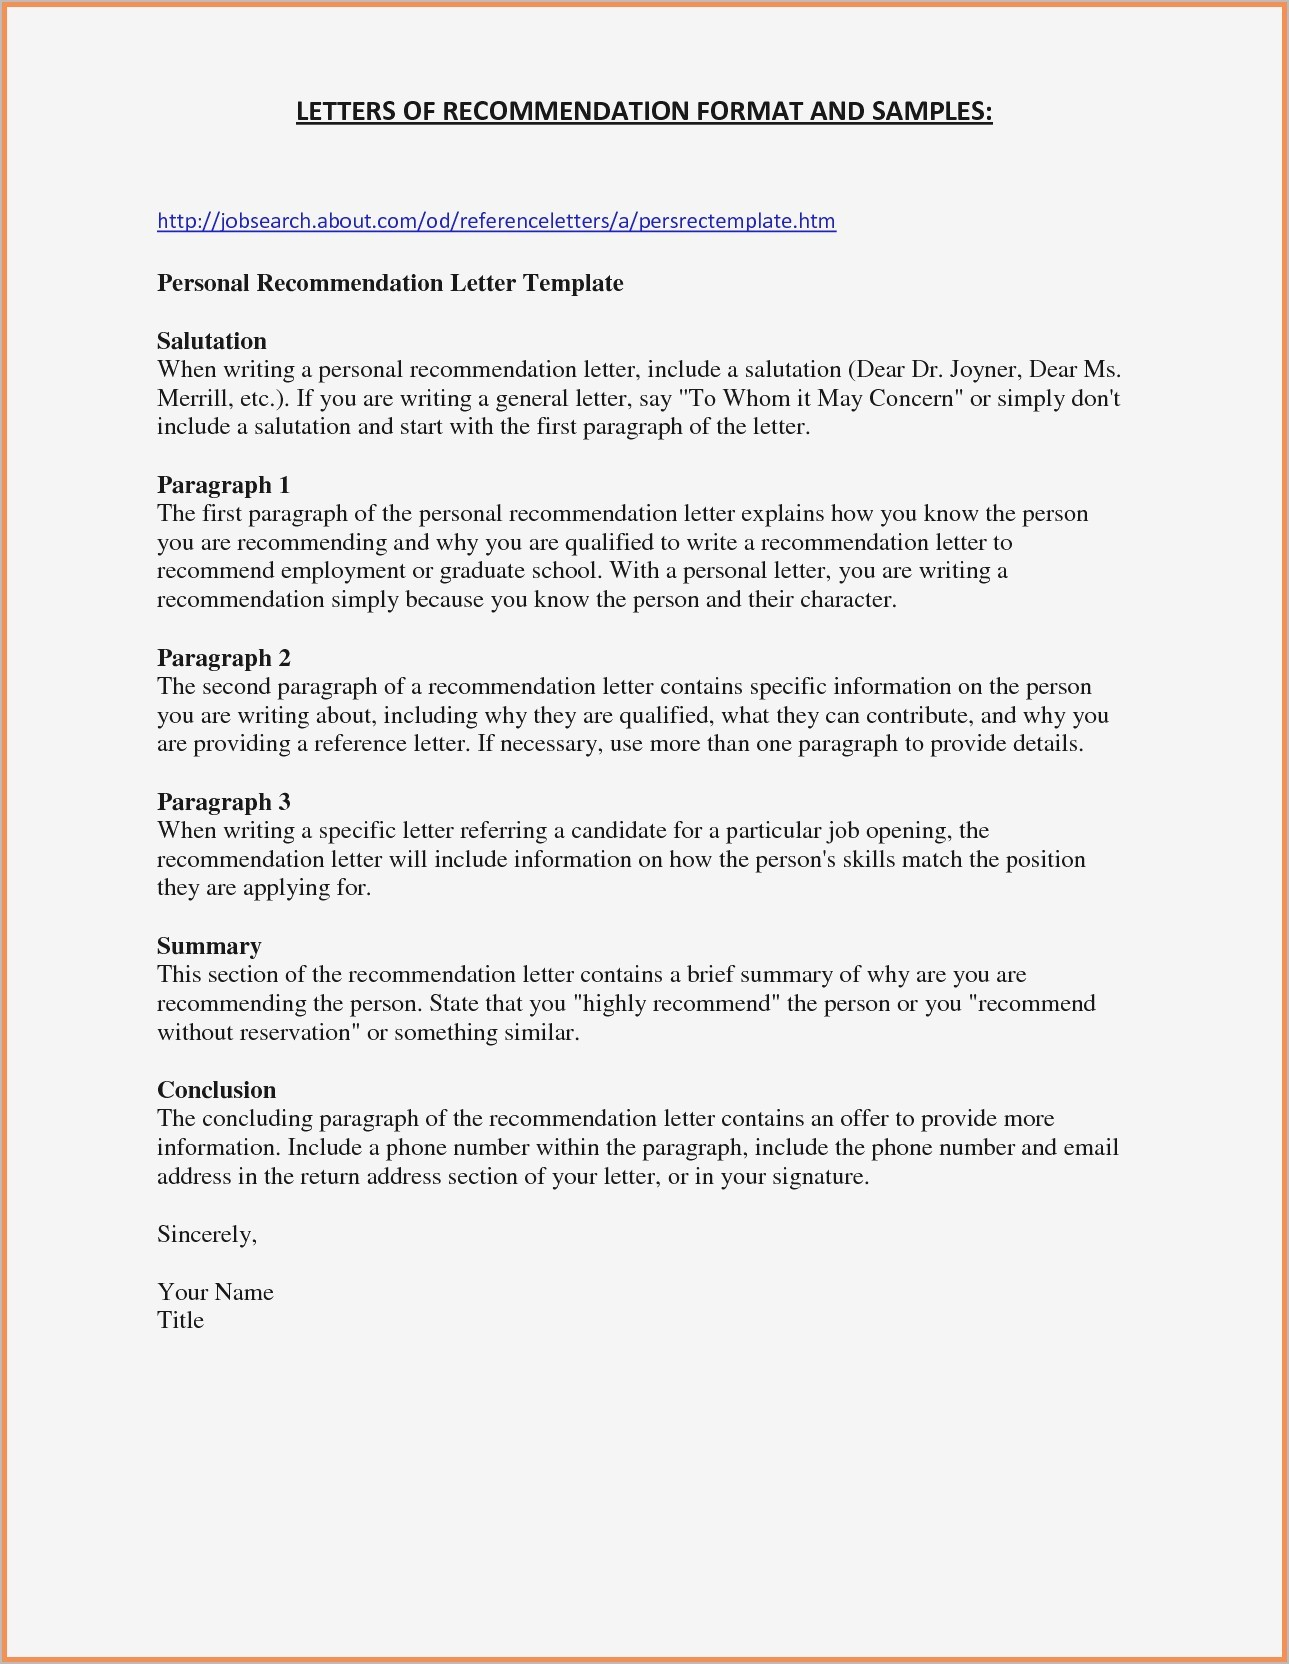 Employee Referral Letter Template - Job Letter Re Mendation Template Best Free Letter Re Mendation